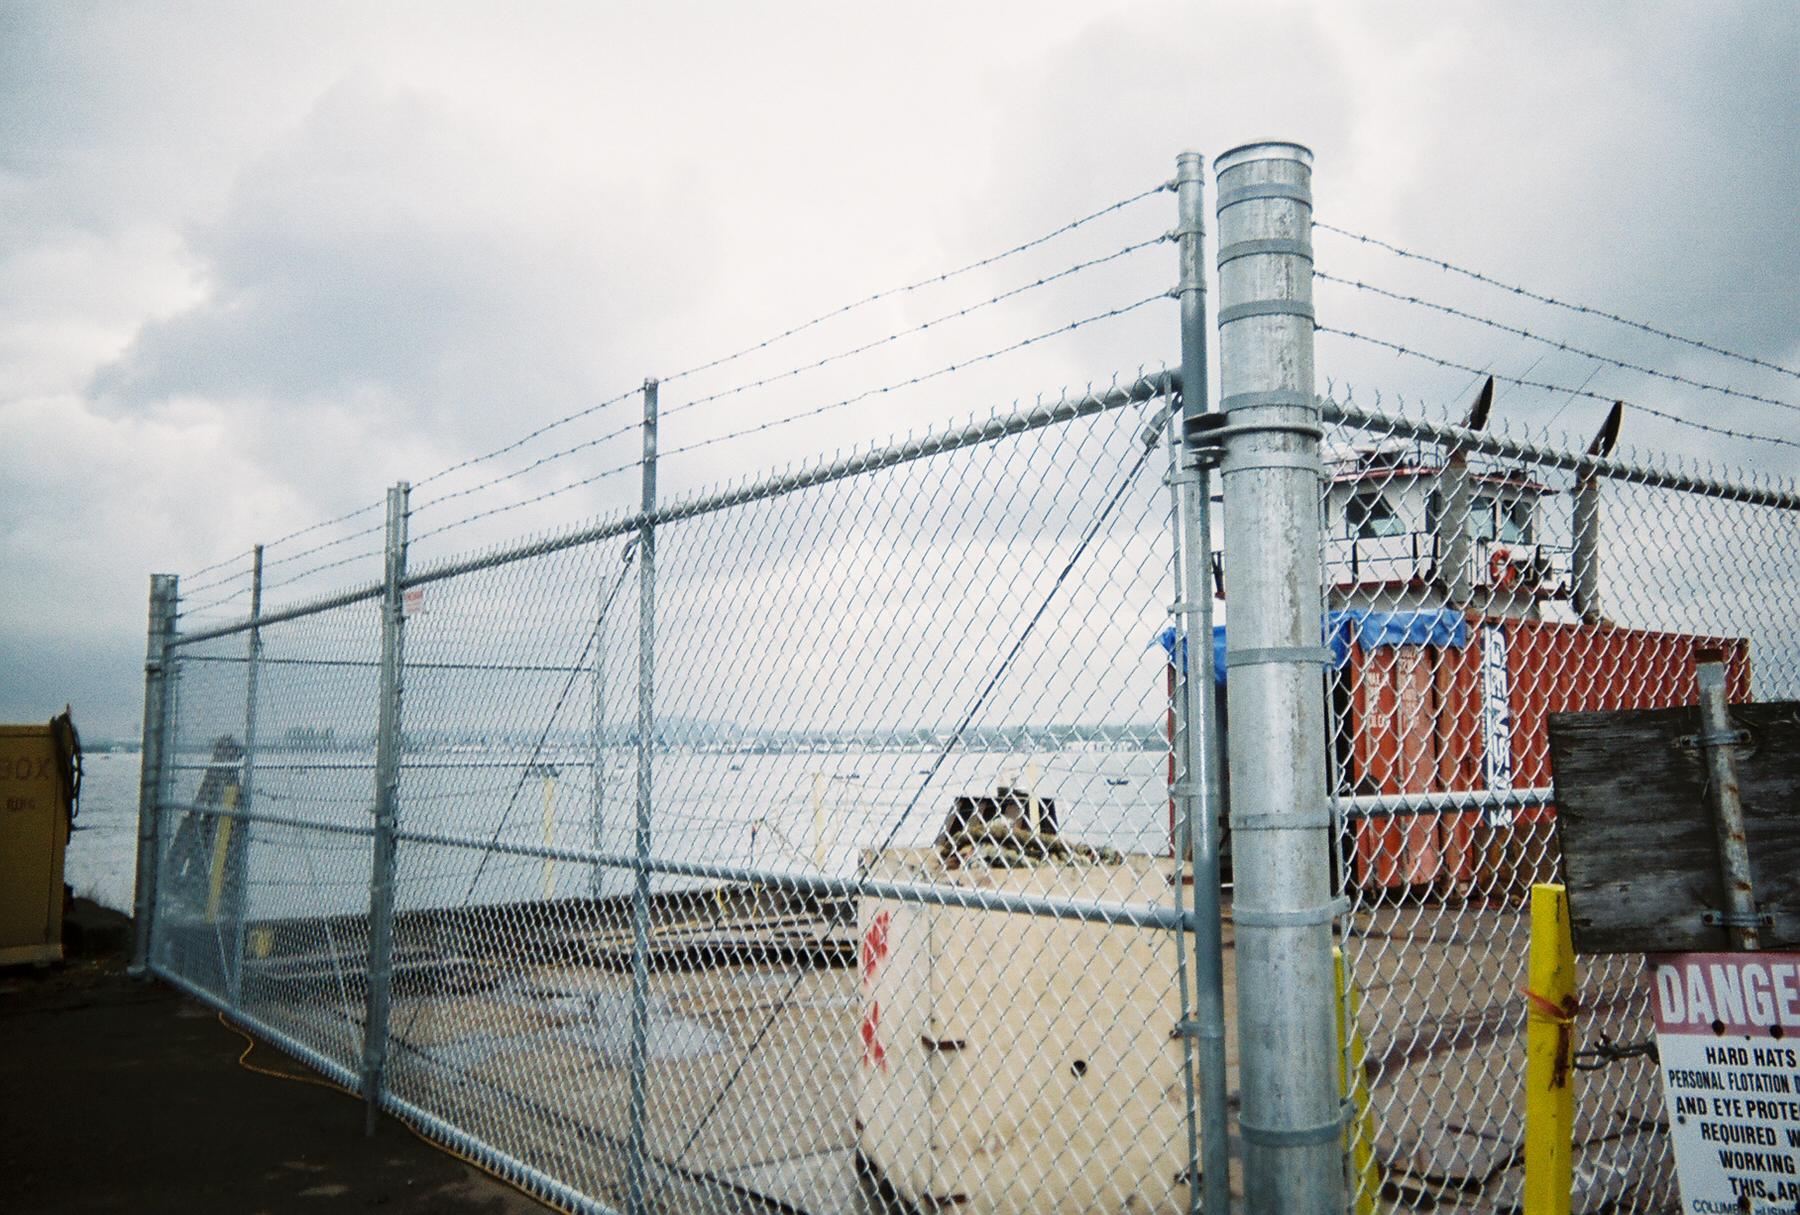 Industrial Strength Chain Link Fence providing security for valuable cargo being off loaded from ship. Contact Vancouver Washington's Best Fence Builders. Providing the best for commercial or residential fence needs. Call: 360-254-2299 today